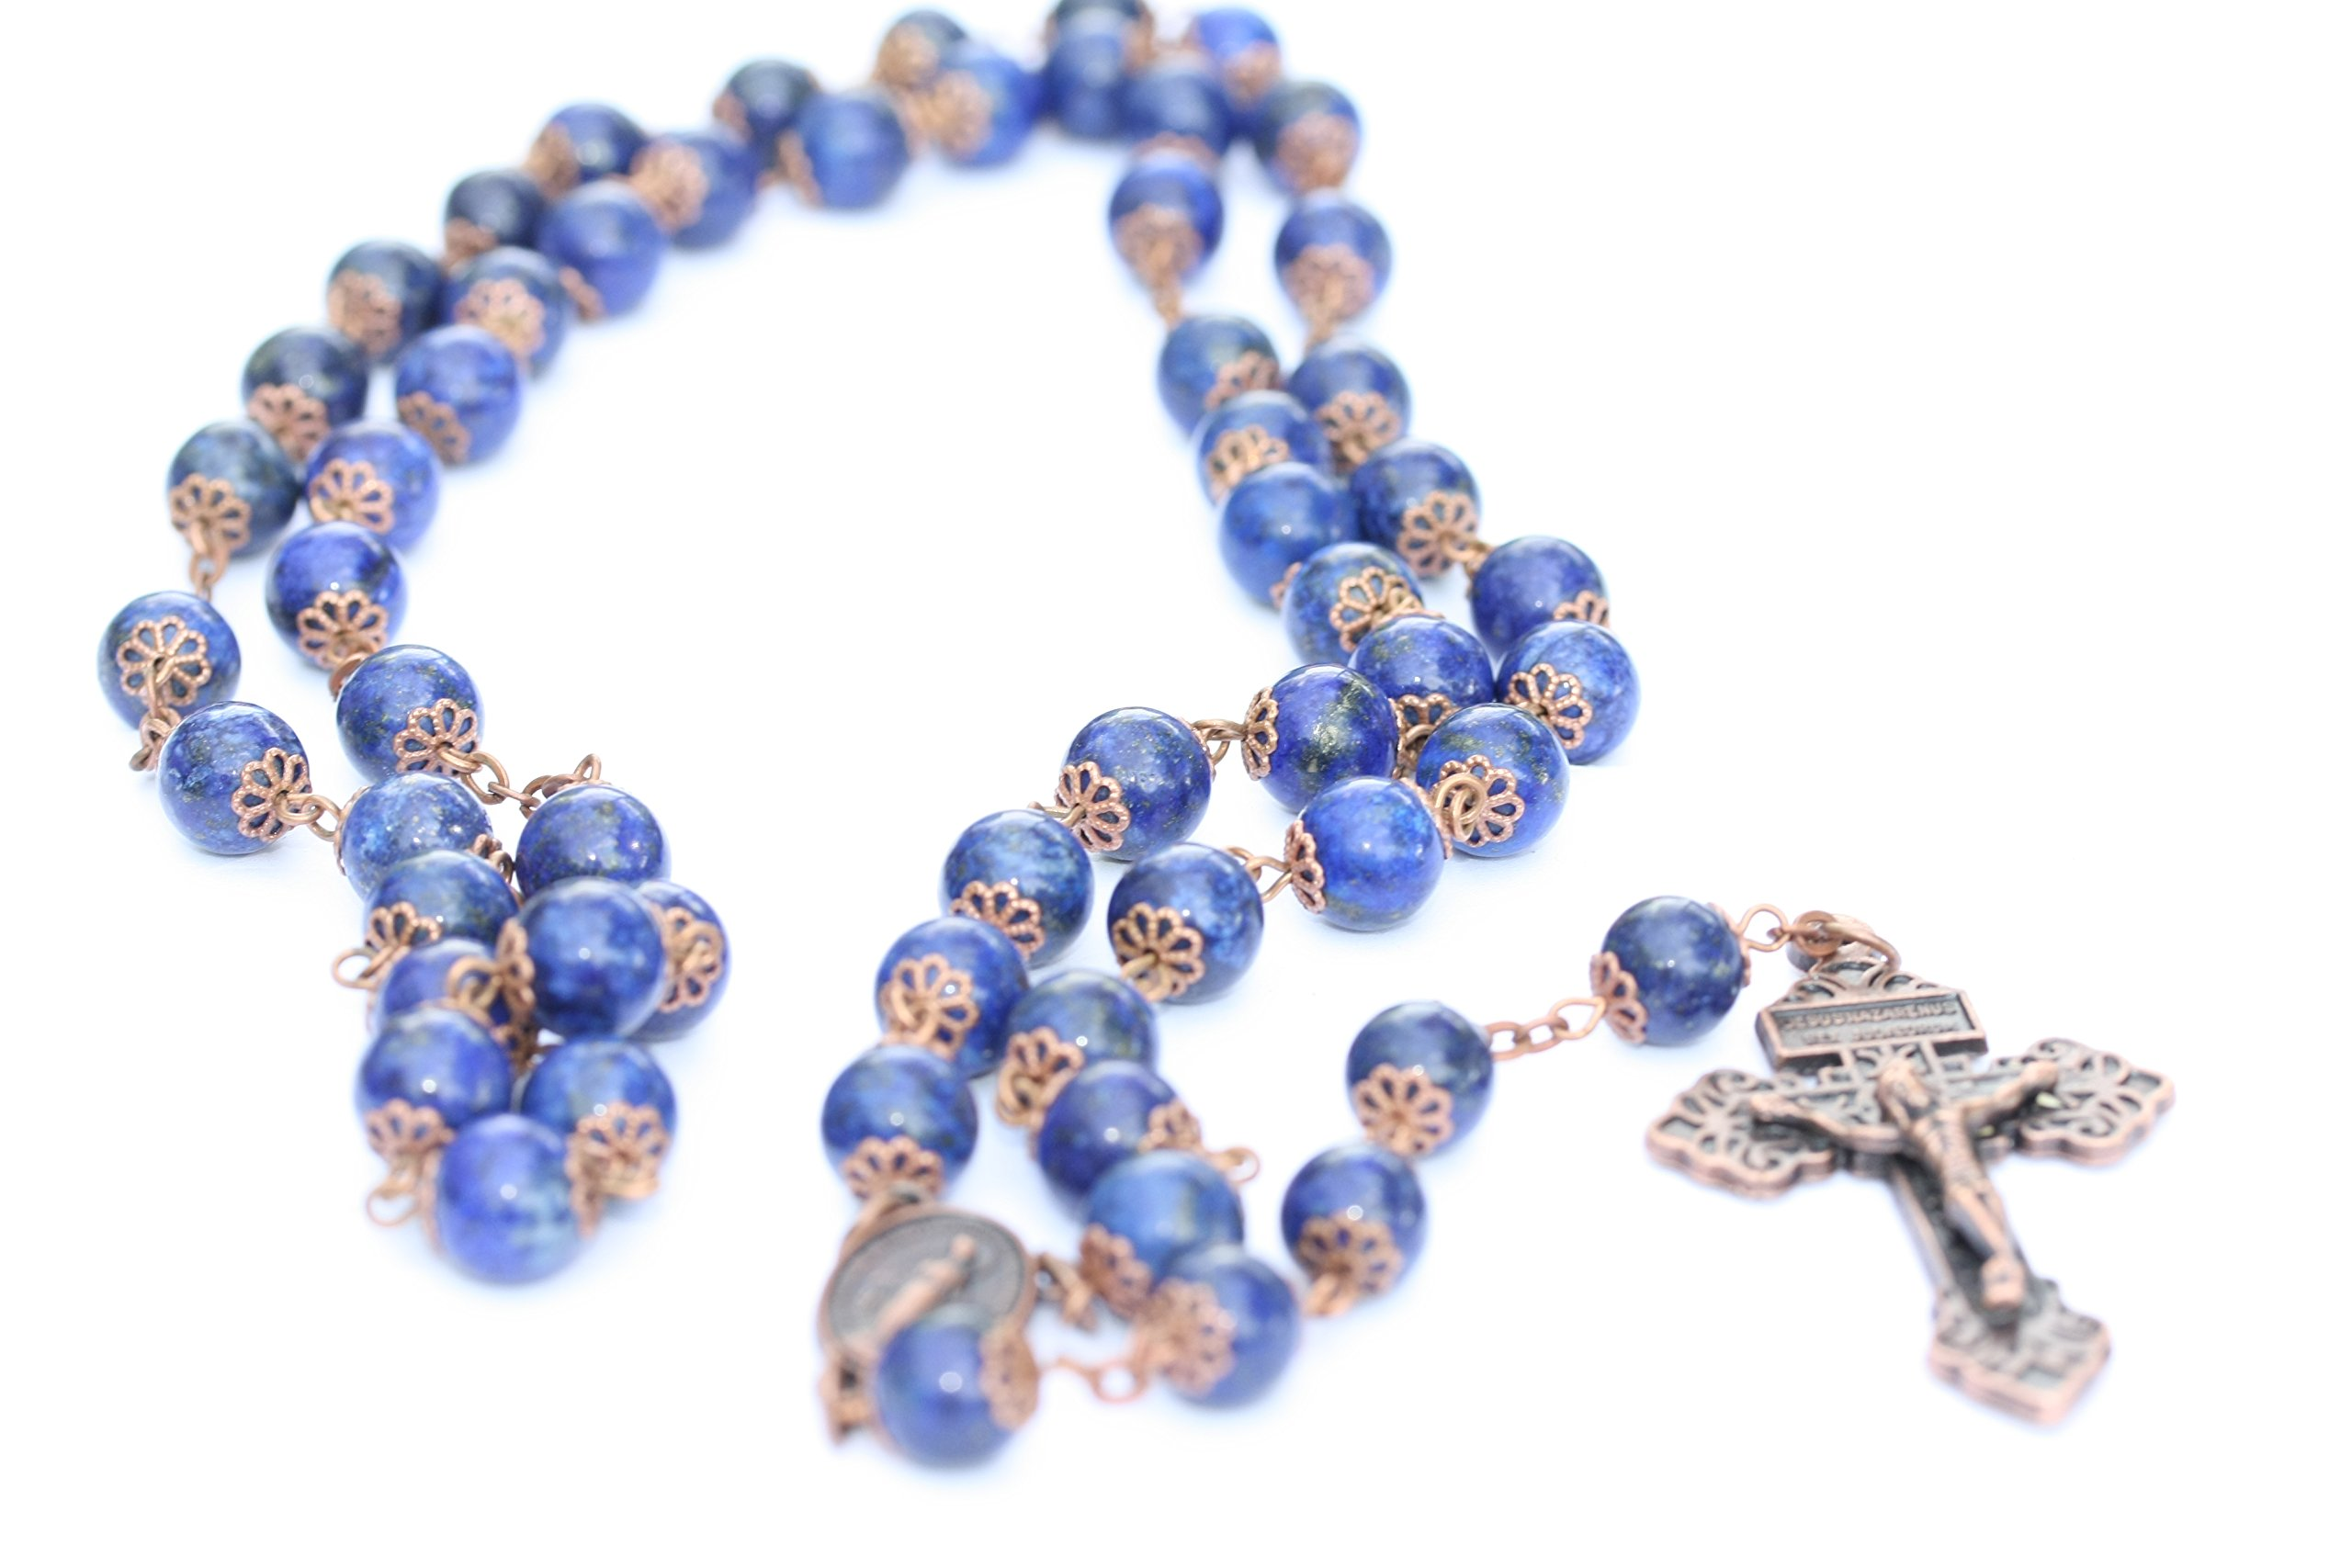 Large Genuine Lapis and Copper 10mm 5 Decade Natural Stone Bead Rosary Made in Oklahoma by Oklahoma Rosaries (Image #4)